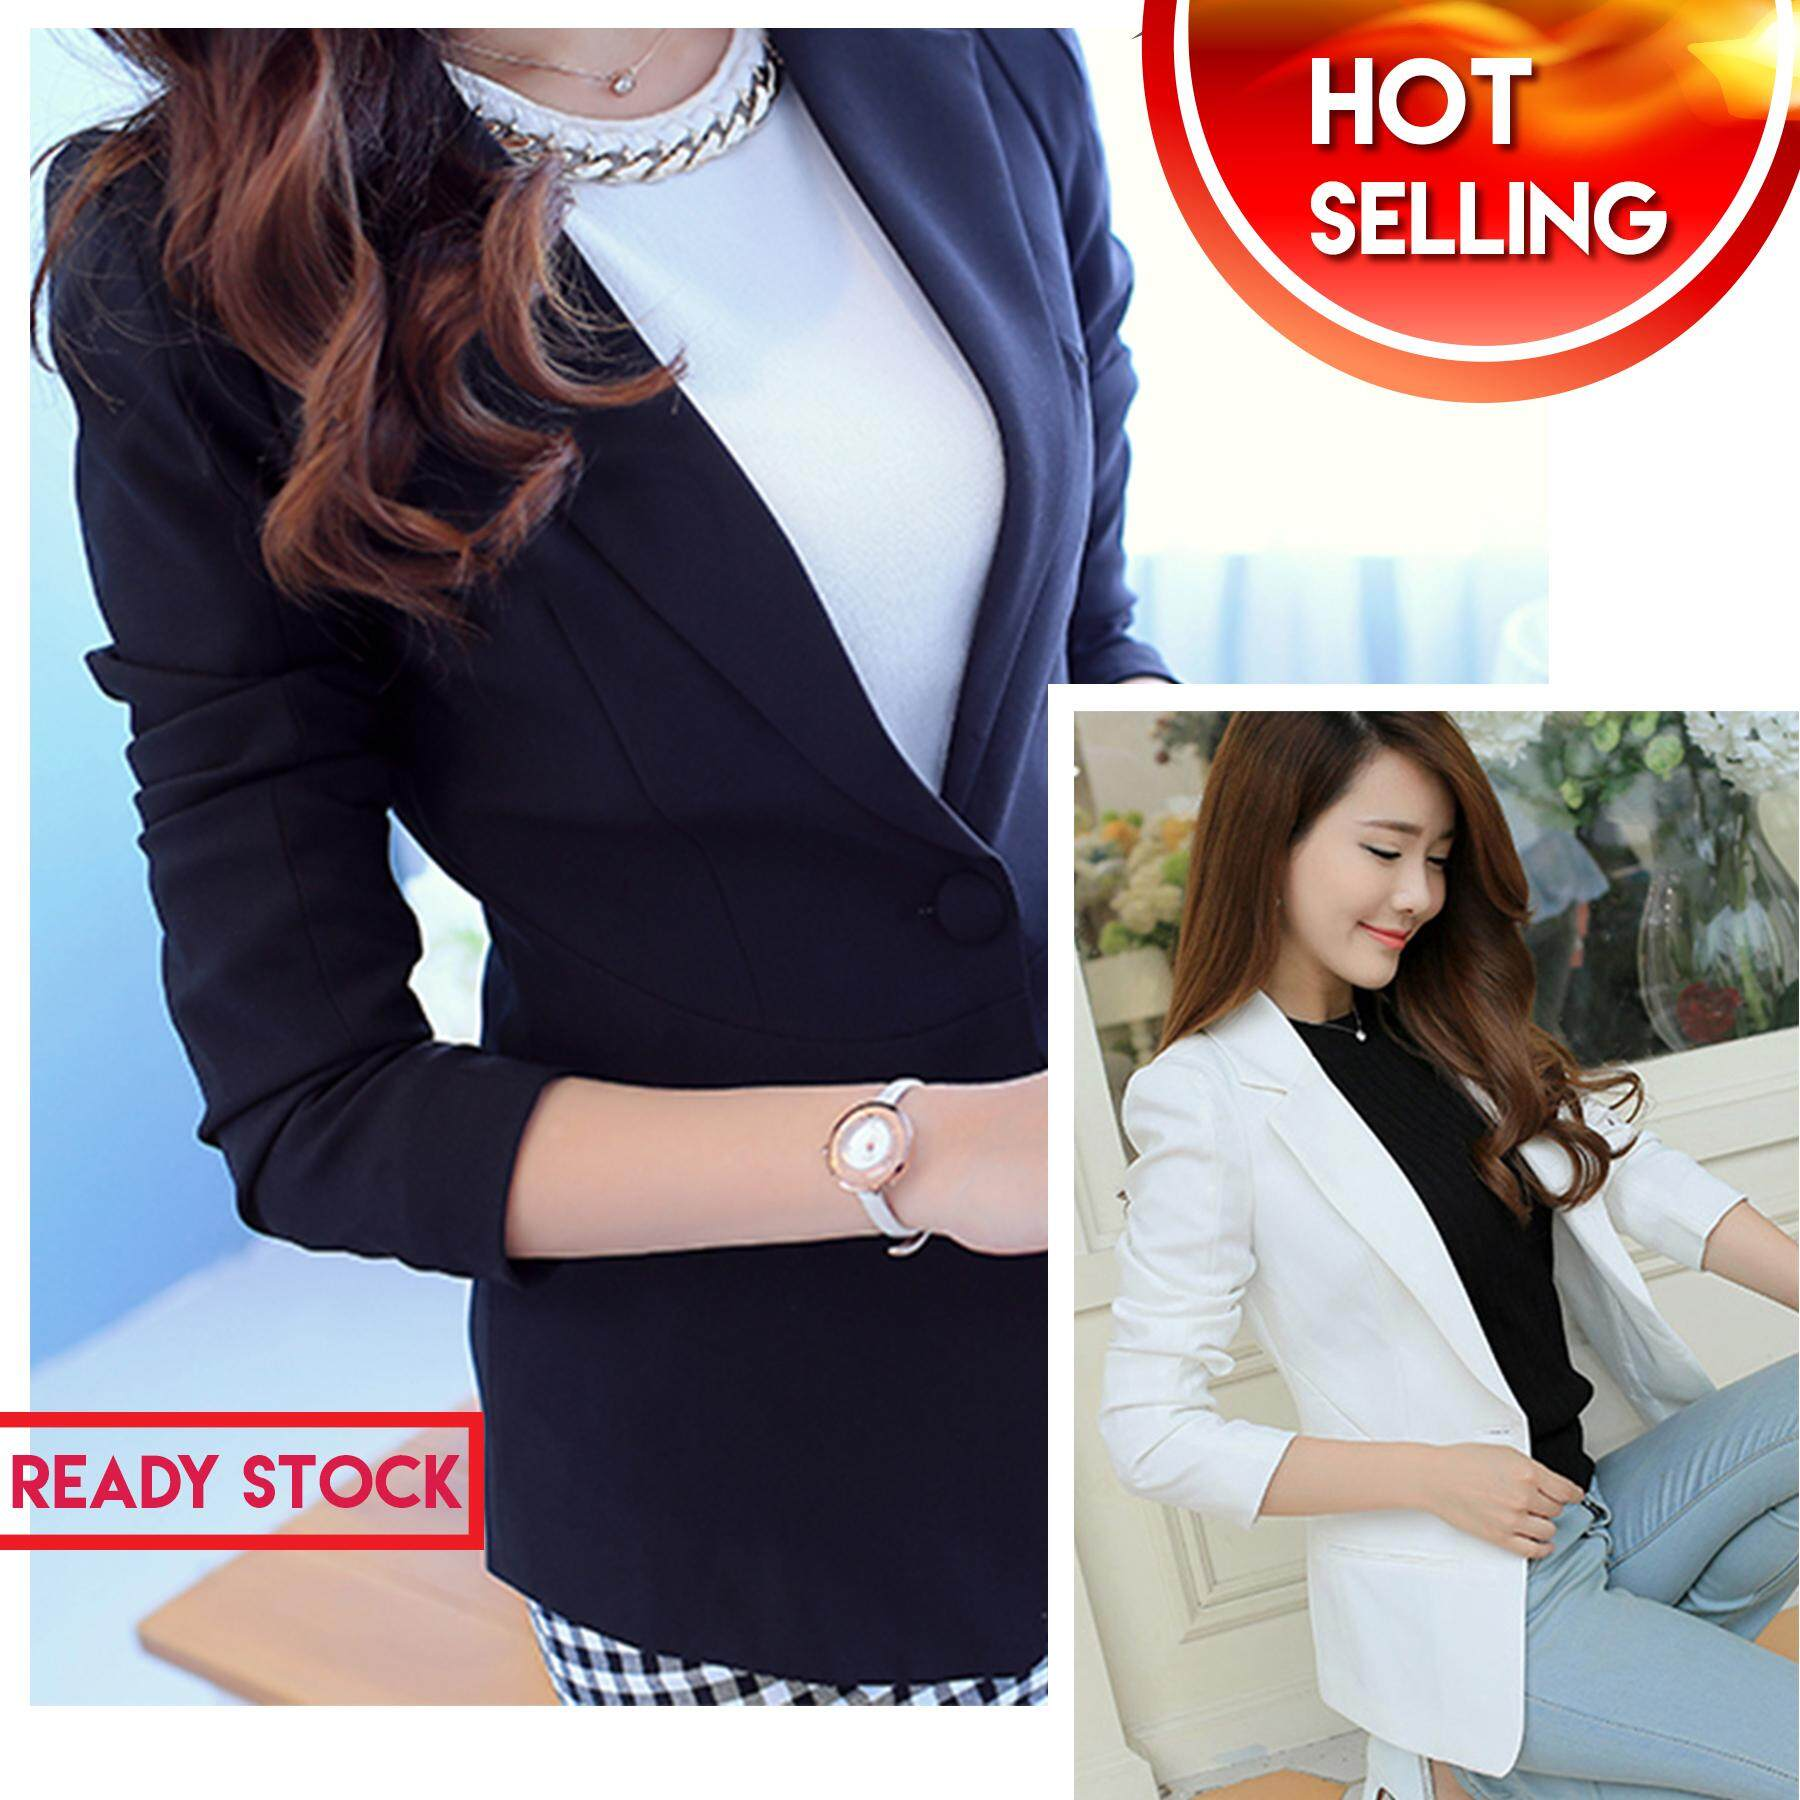 756c627fab 89  READY STOCK  NEW 2019 Women s Slim Fit Stylish One Button Suit Coat  Jacket